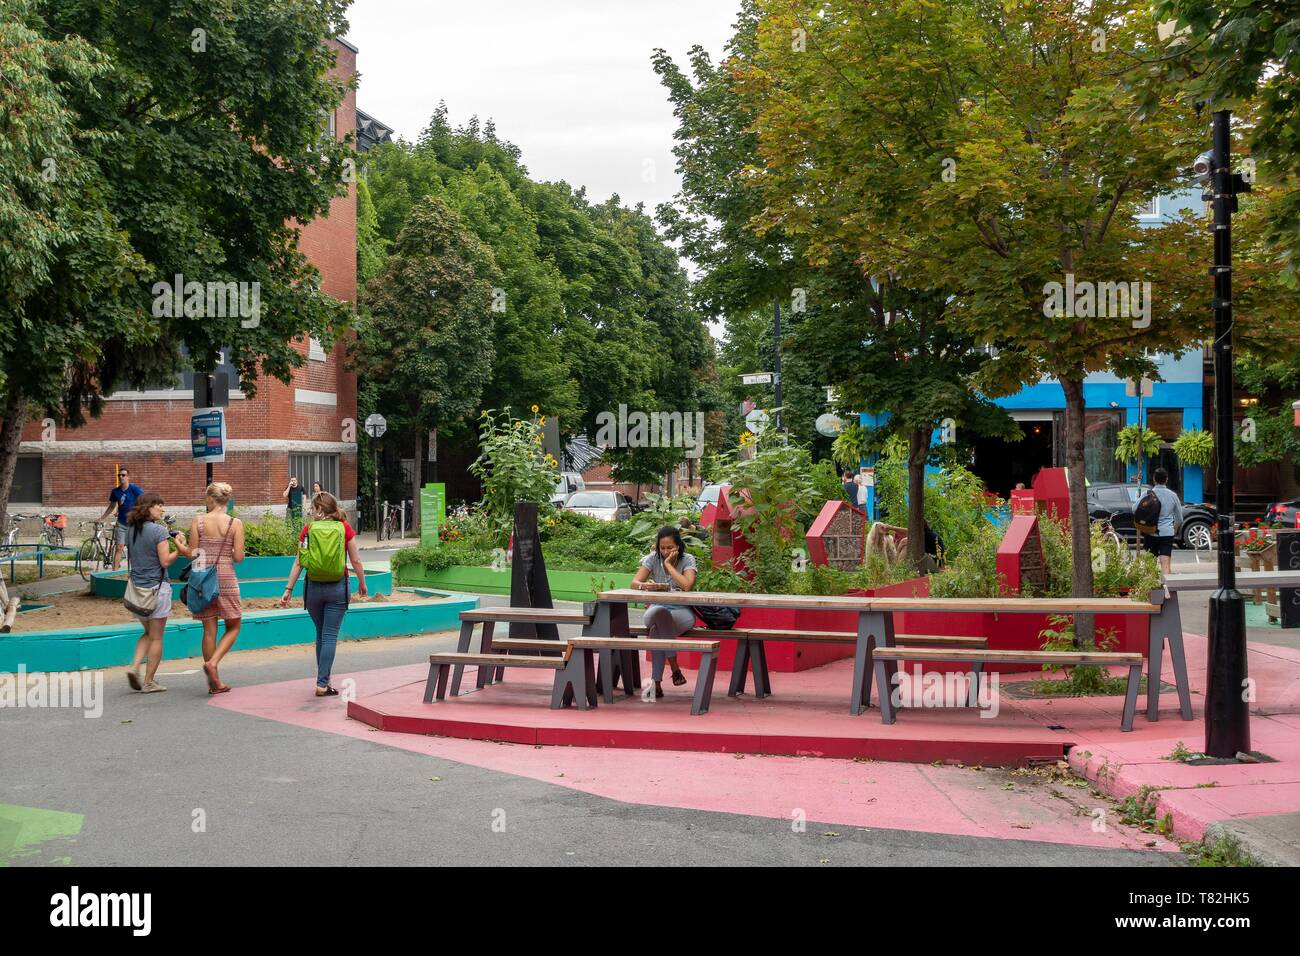 Canada, Province of Quebec, Montreal, Plateau-Mont-Royal, Roy Terraces, Urban Planning - Stock Image